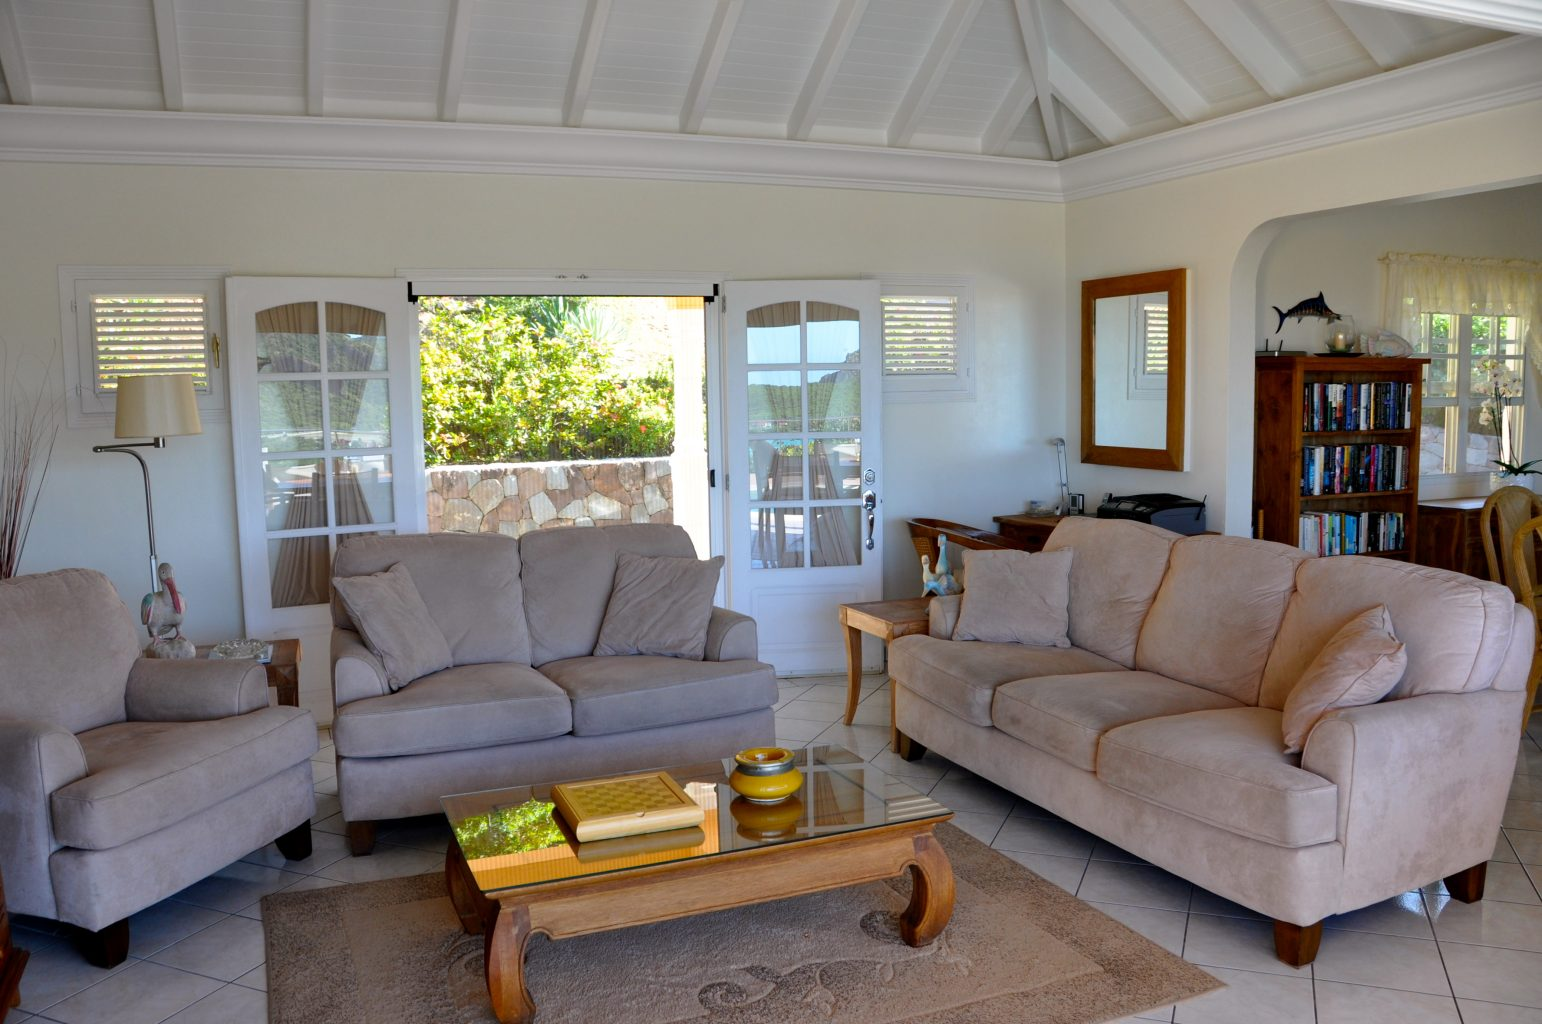 Villa Les Acajous - Seaview Villa for Rent a Short Drive Away from the Beach, Shops and Restaurants - Living room